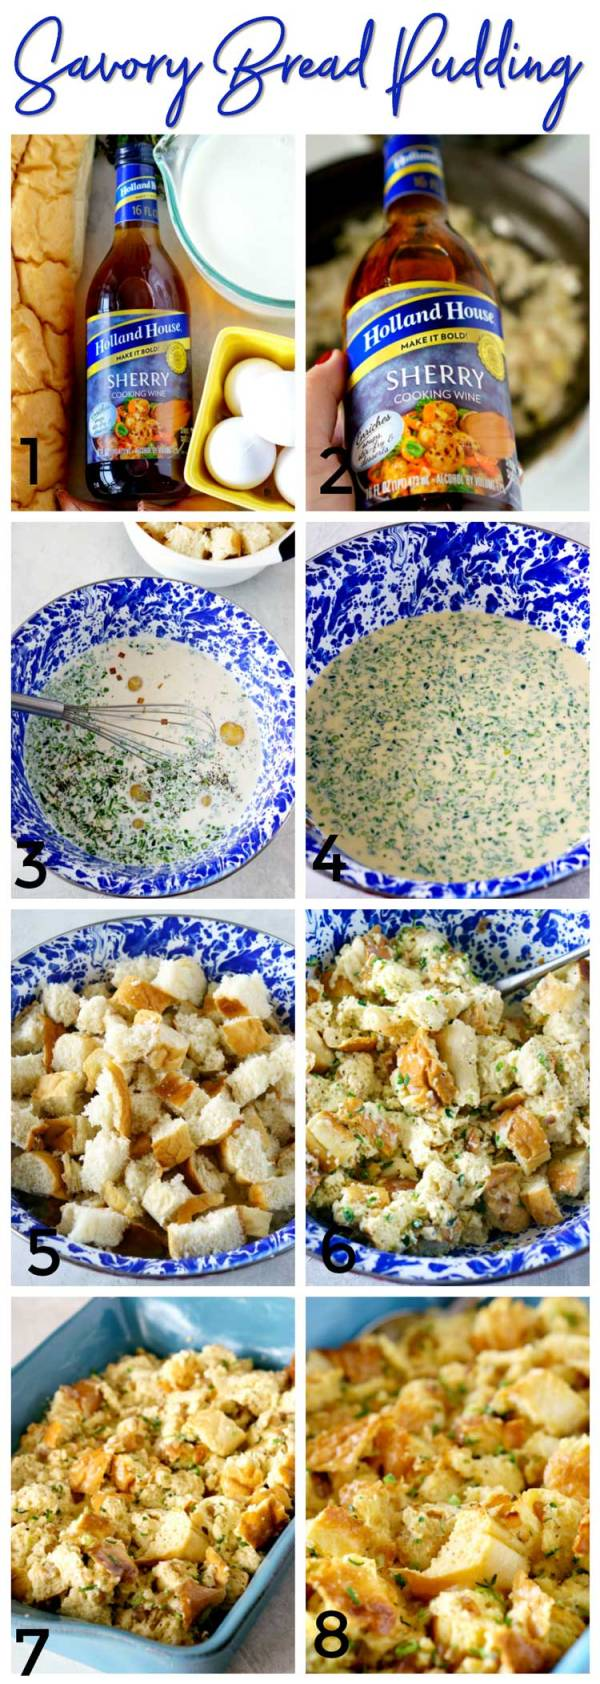 Step-by-Step How to Make Savory Bread Pudding